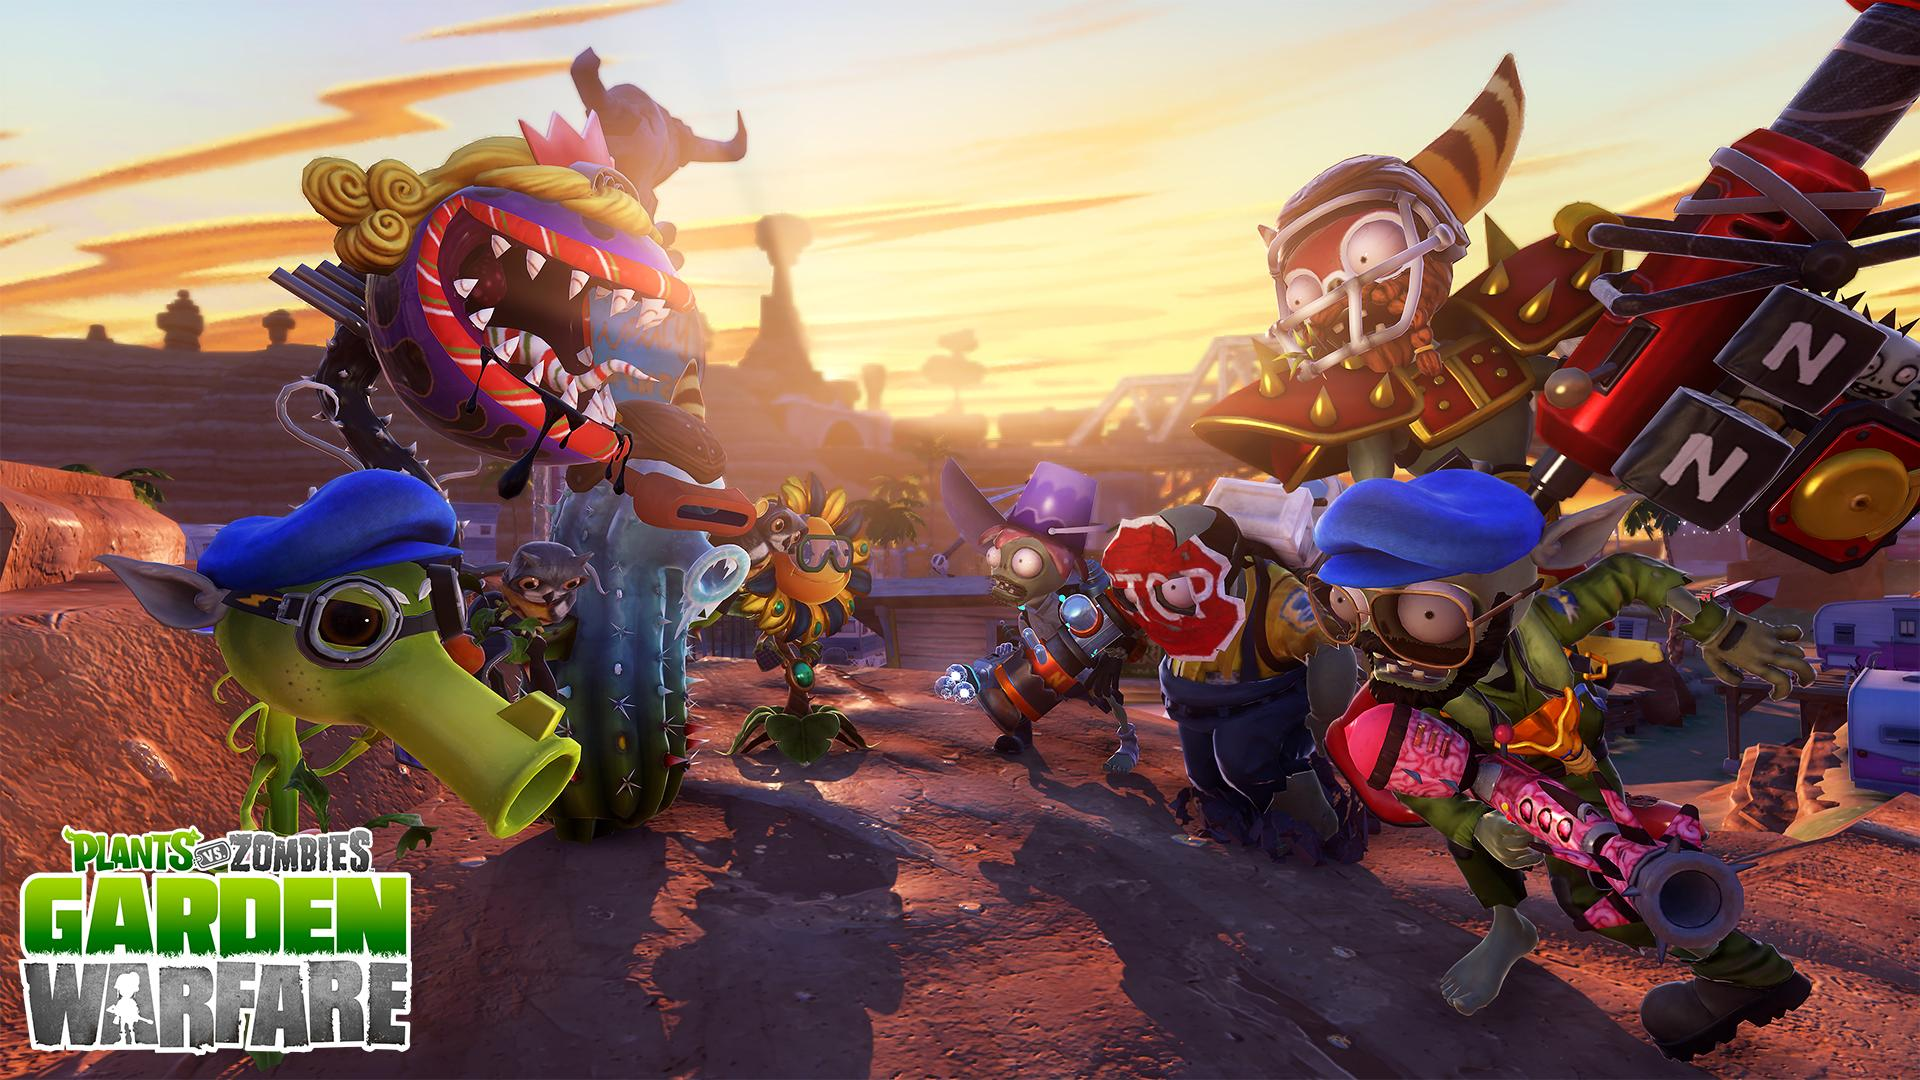 Plants Vs Zombies Garden Warfare Comes To Playstation In